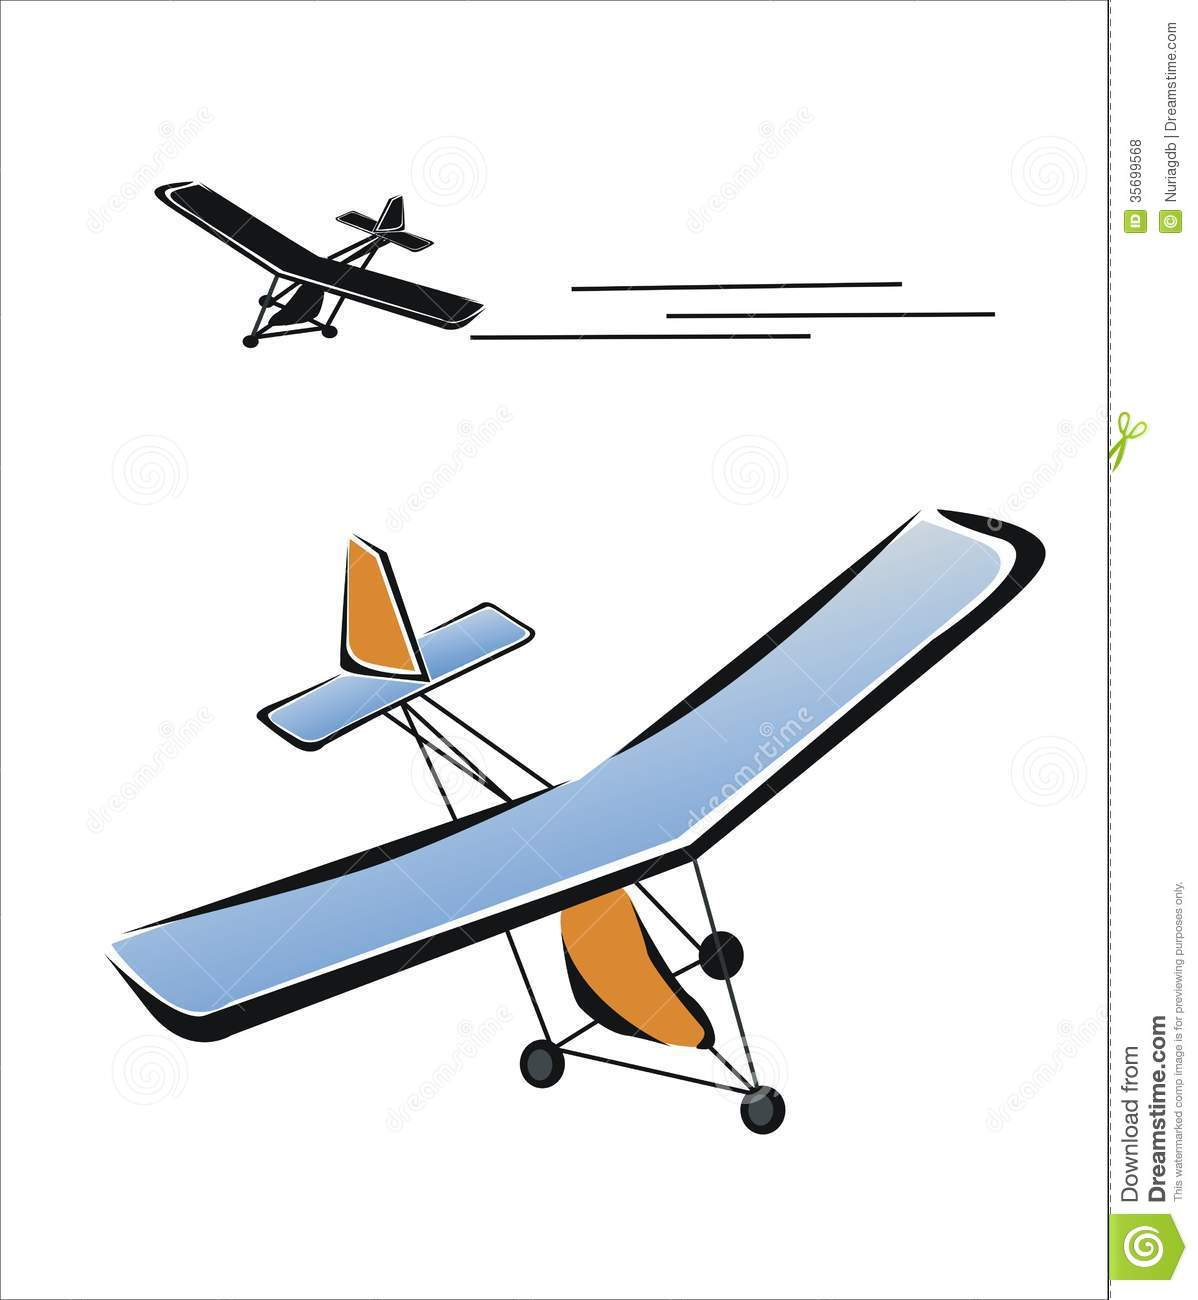 Airplane 2 Royalty Free Stock Photos Image 35699568